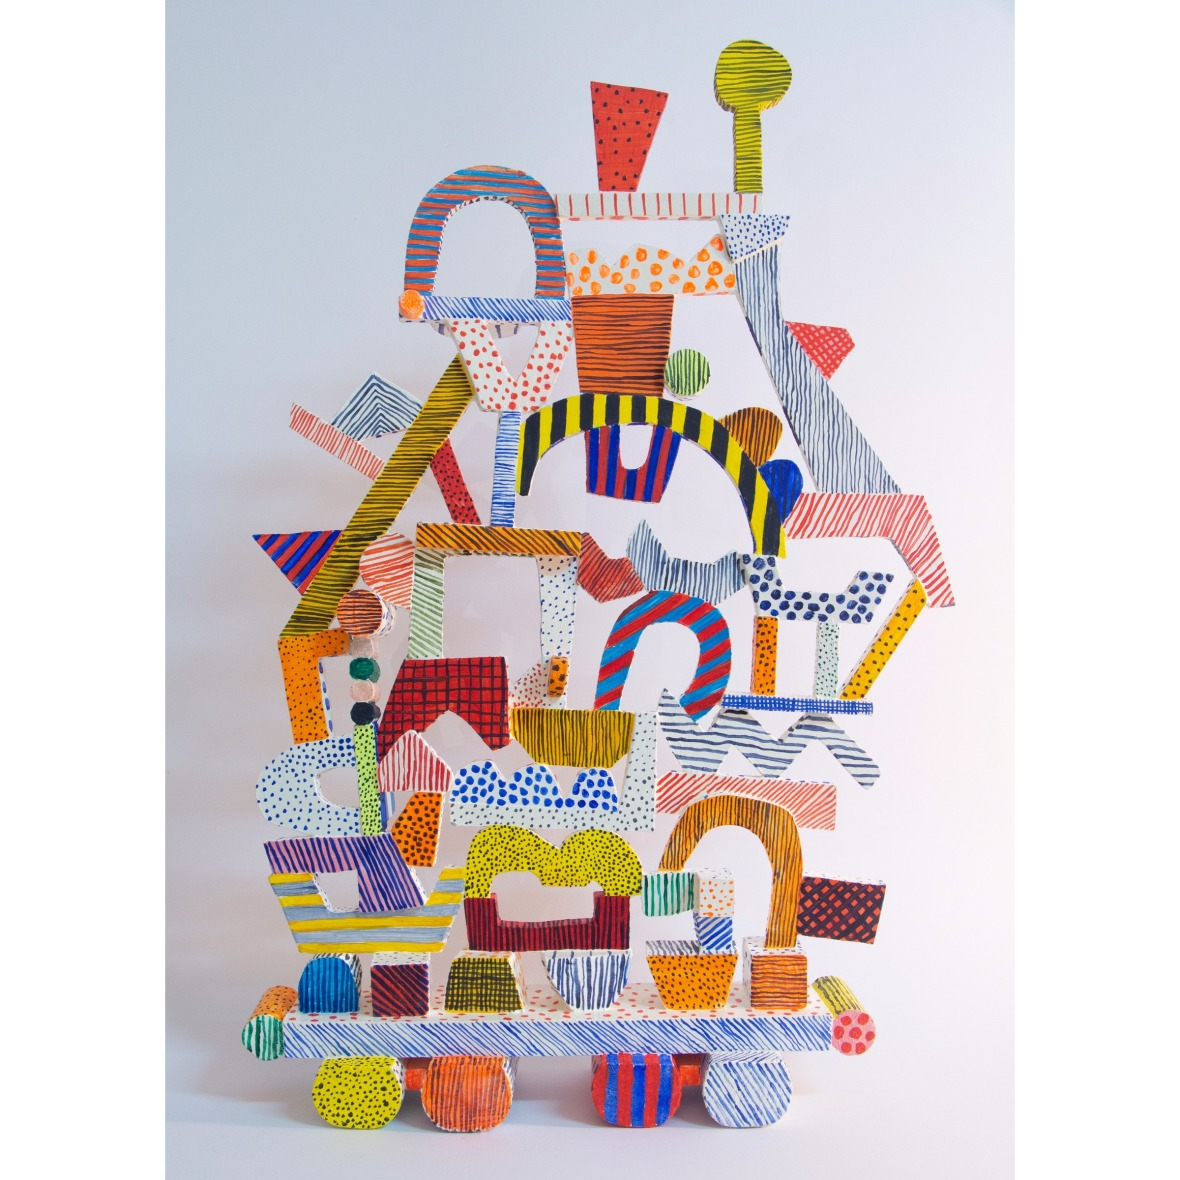 Everything I own, painted timber construction Julia Flanagan